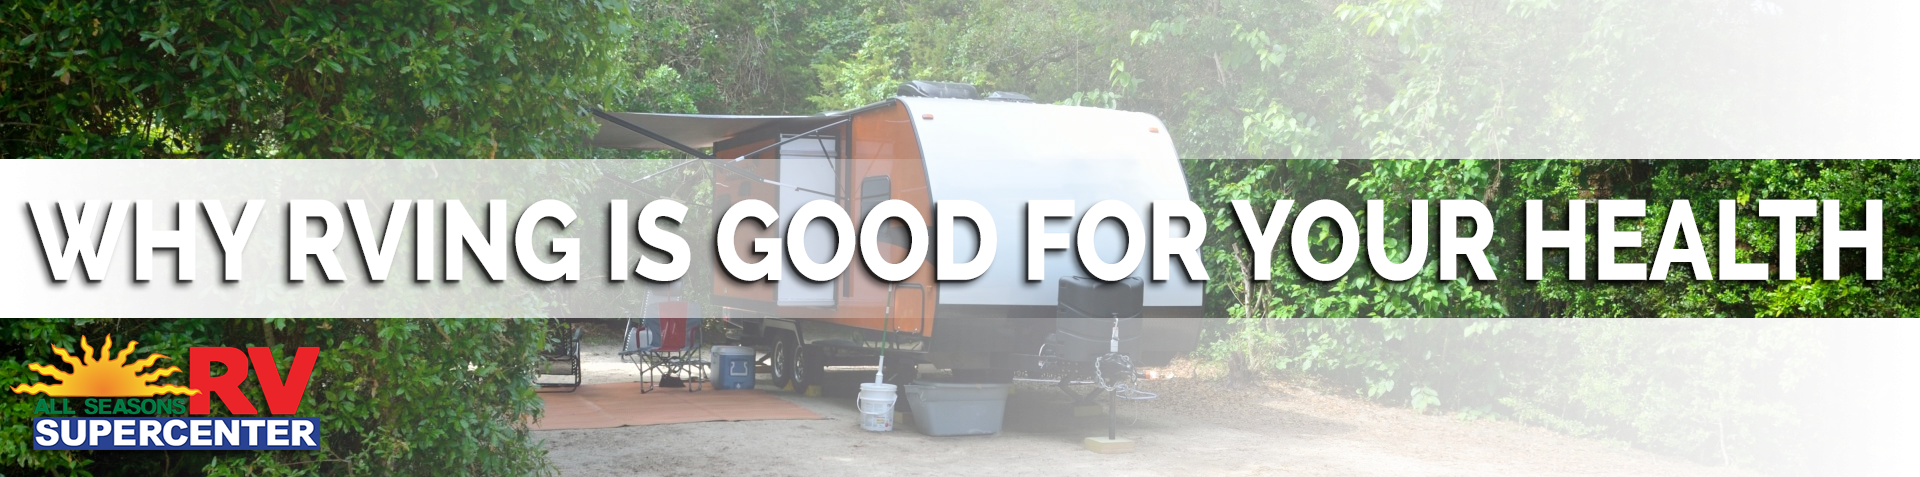 RVing good for health - Travel Trailer RV in the woods Banner